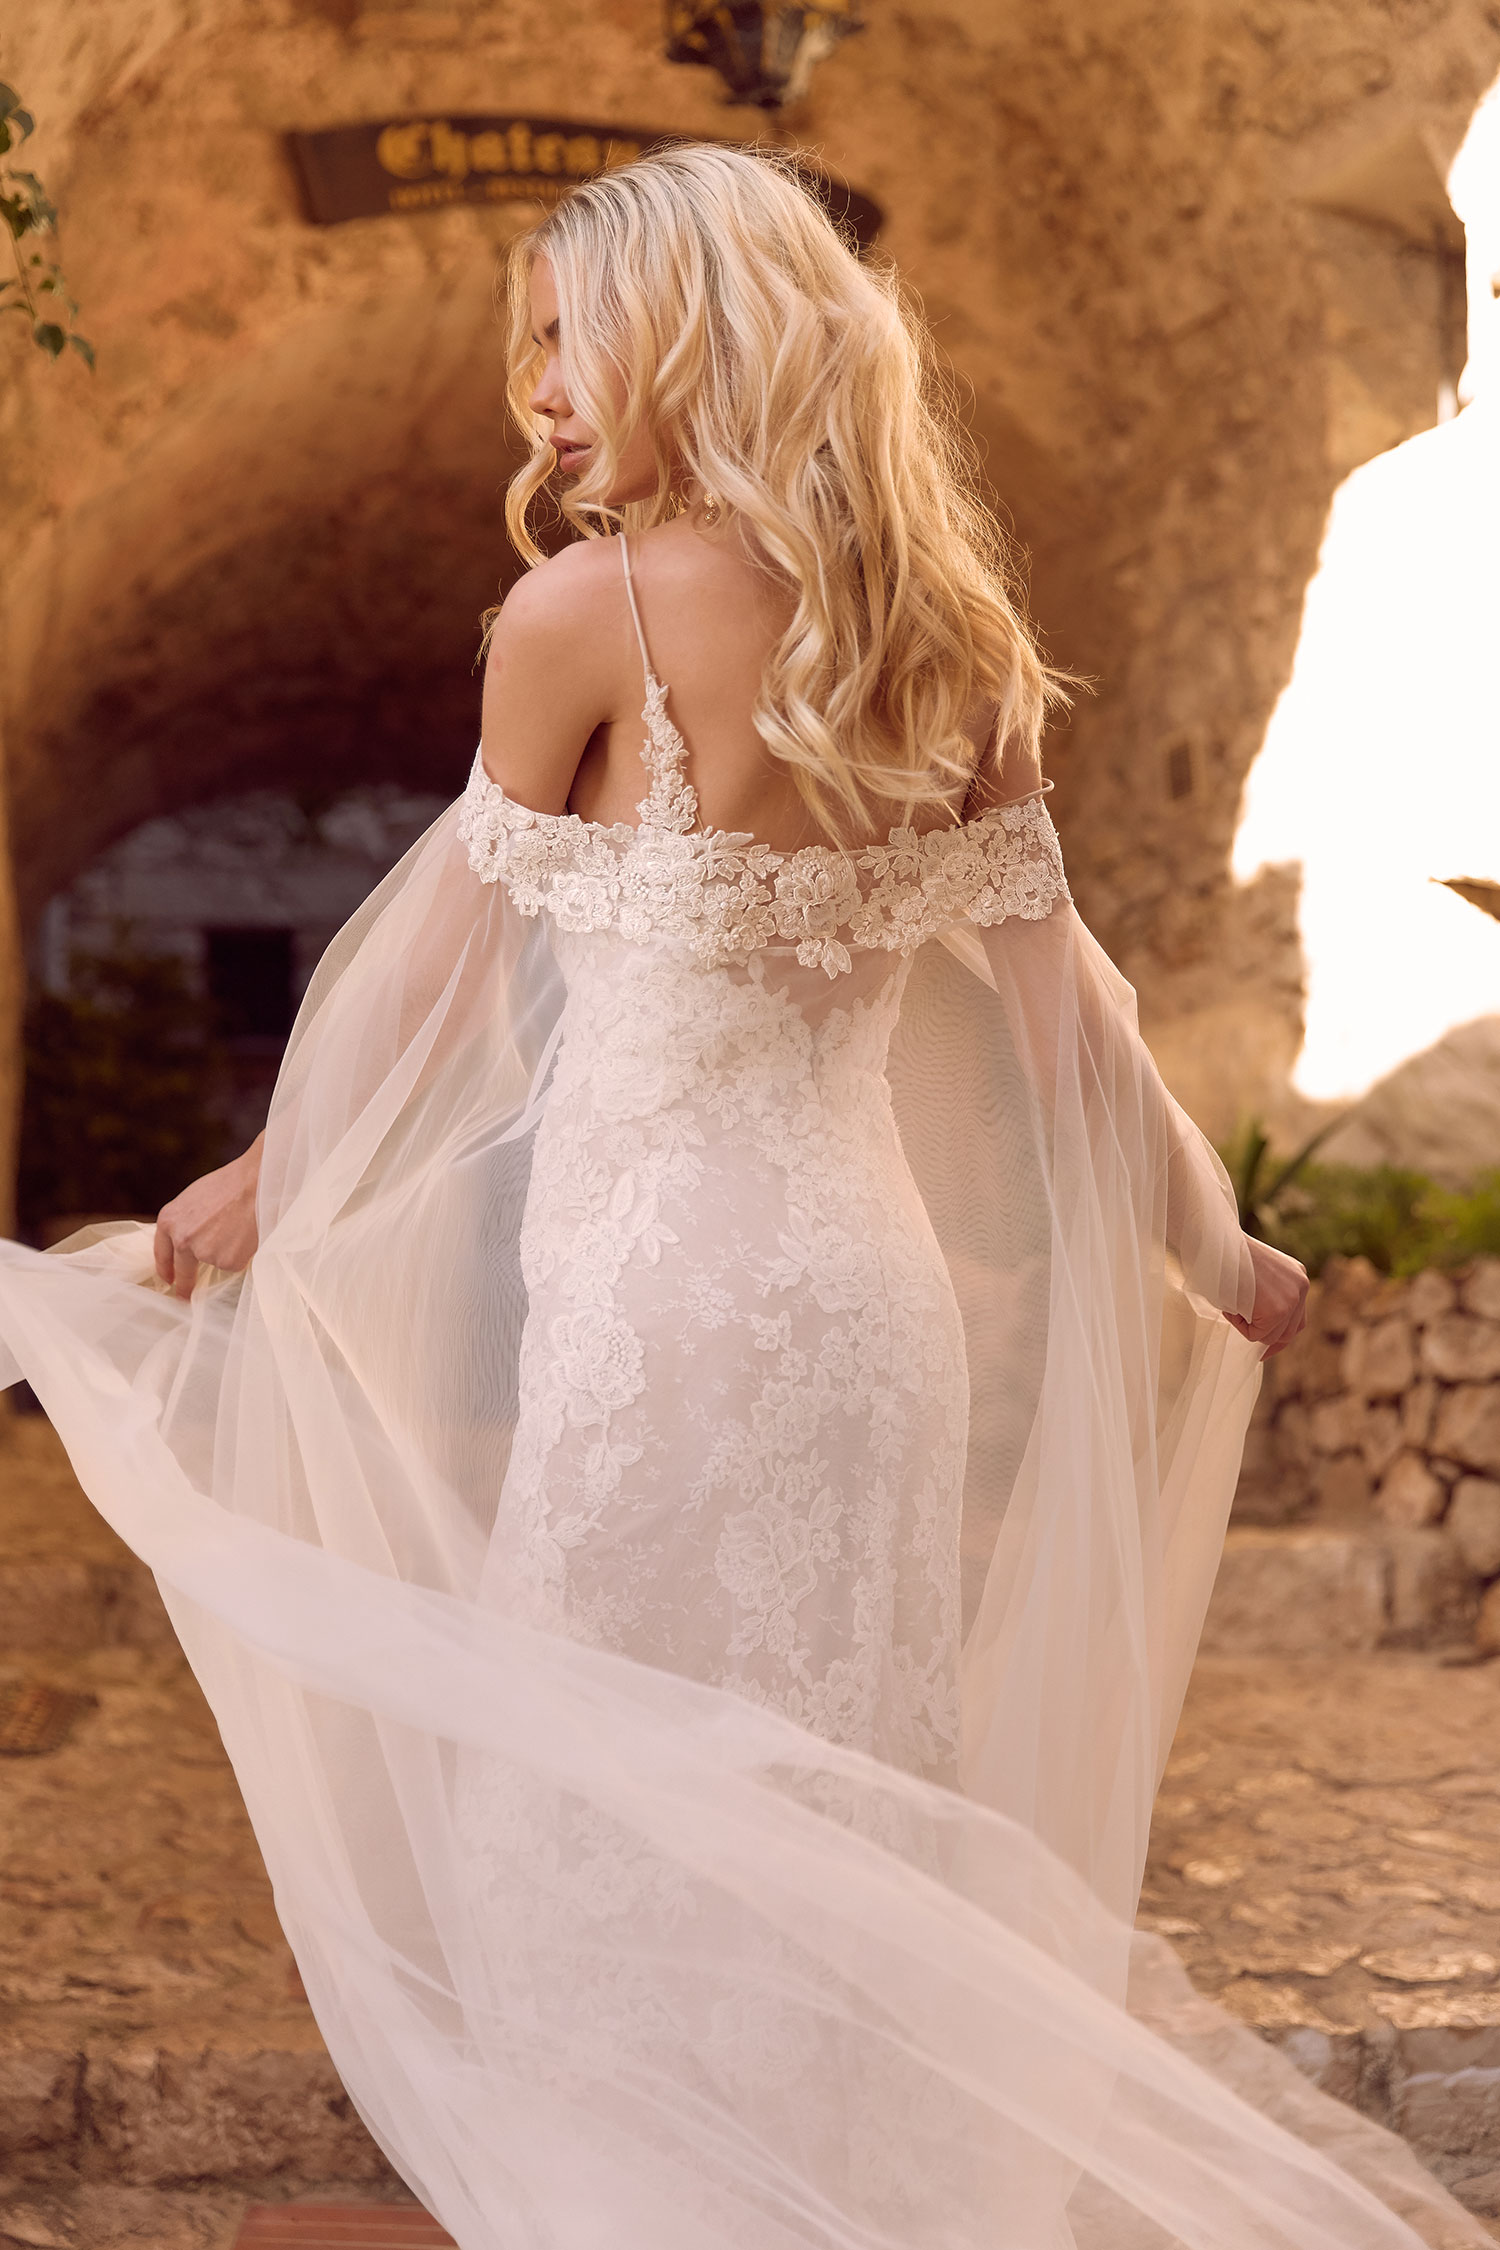 HENLEY-CAPE-ML4319C-TULLE-AND-LACE-CAPE-FOR-HENLEY-WEDDING-DRESS-MADI-LANE-BRIDAL3